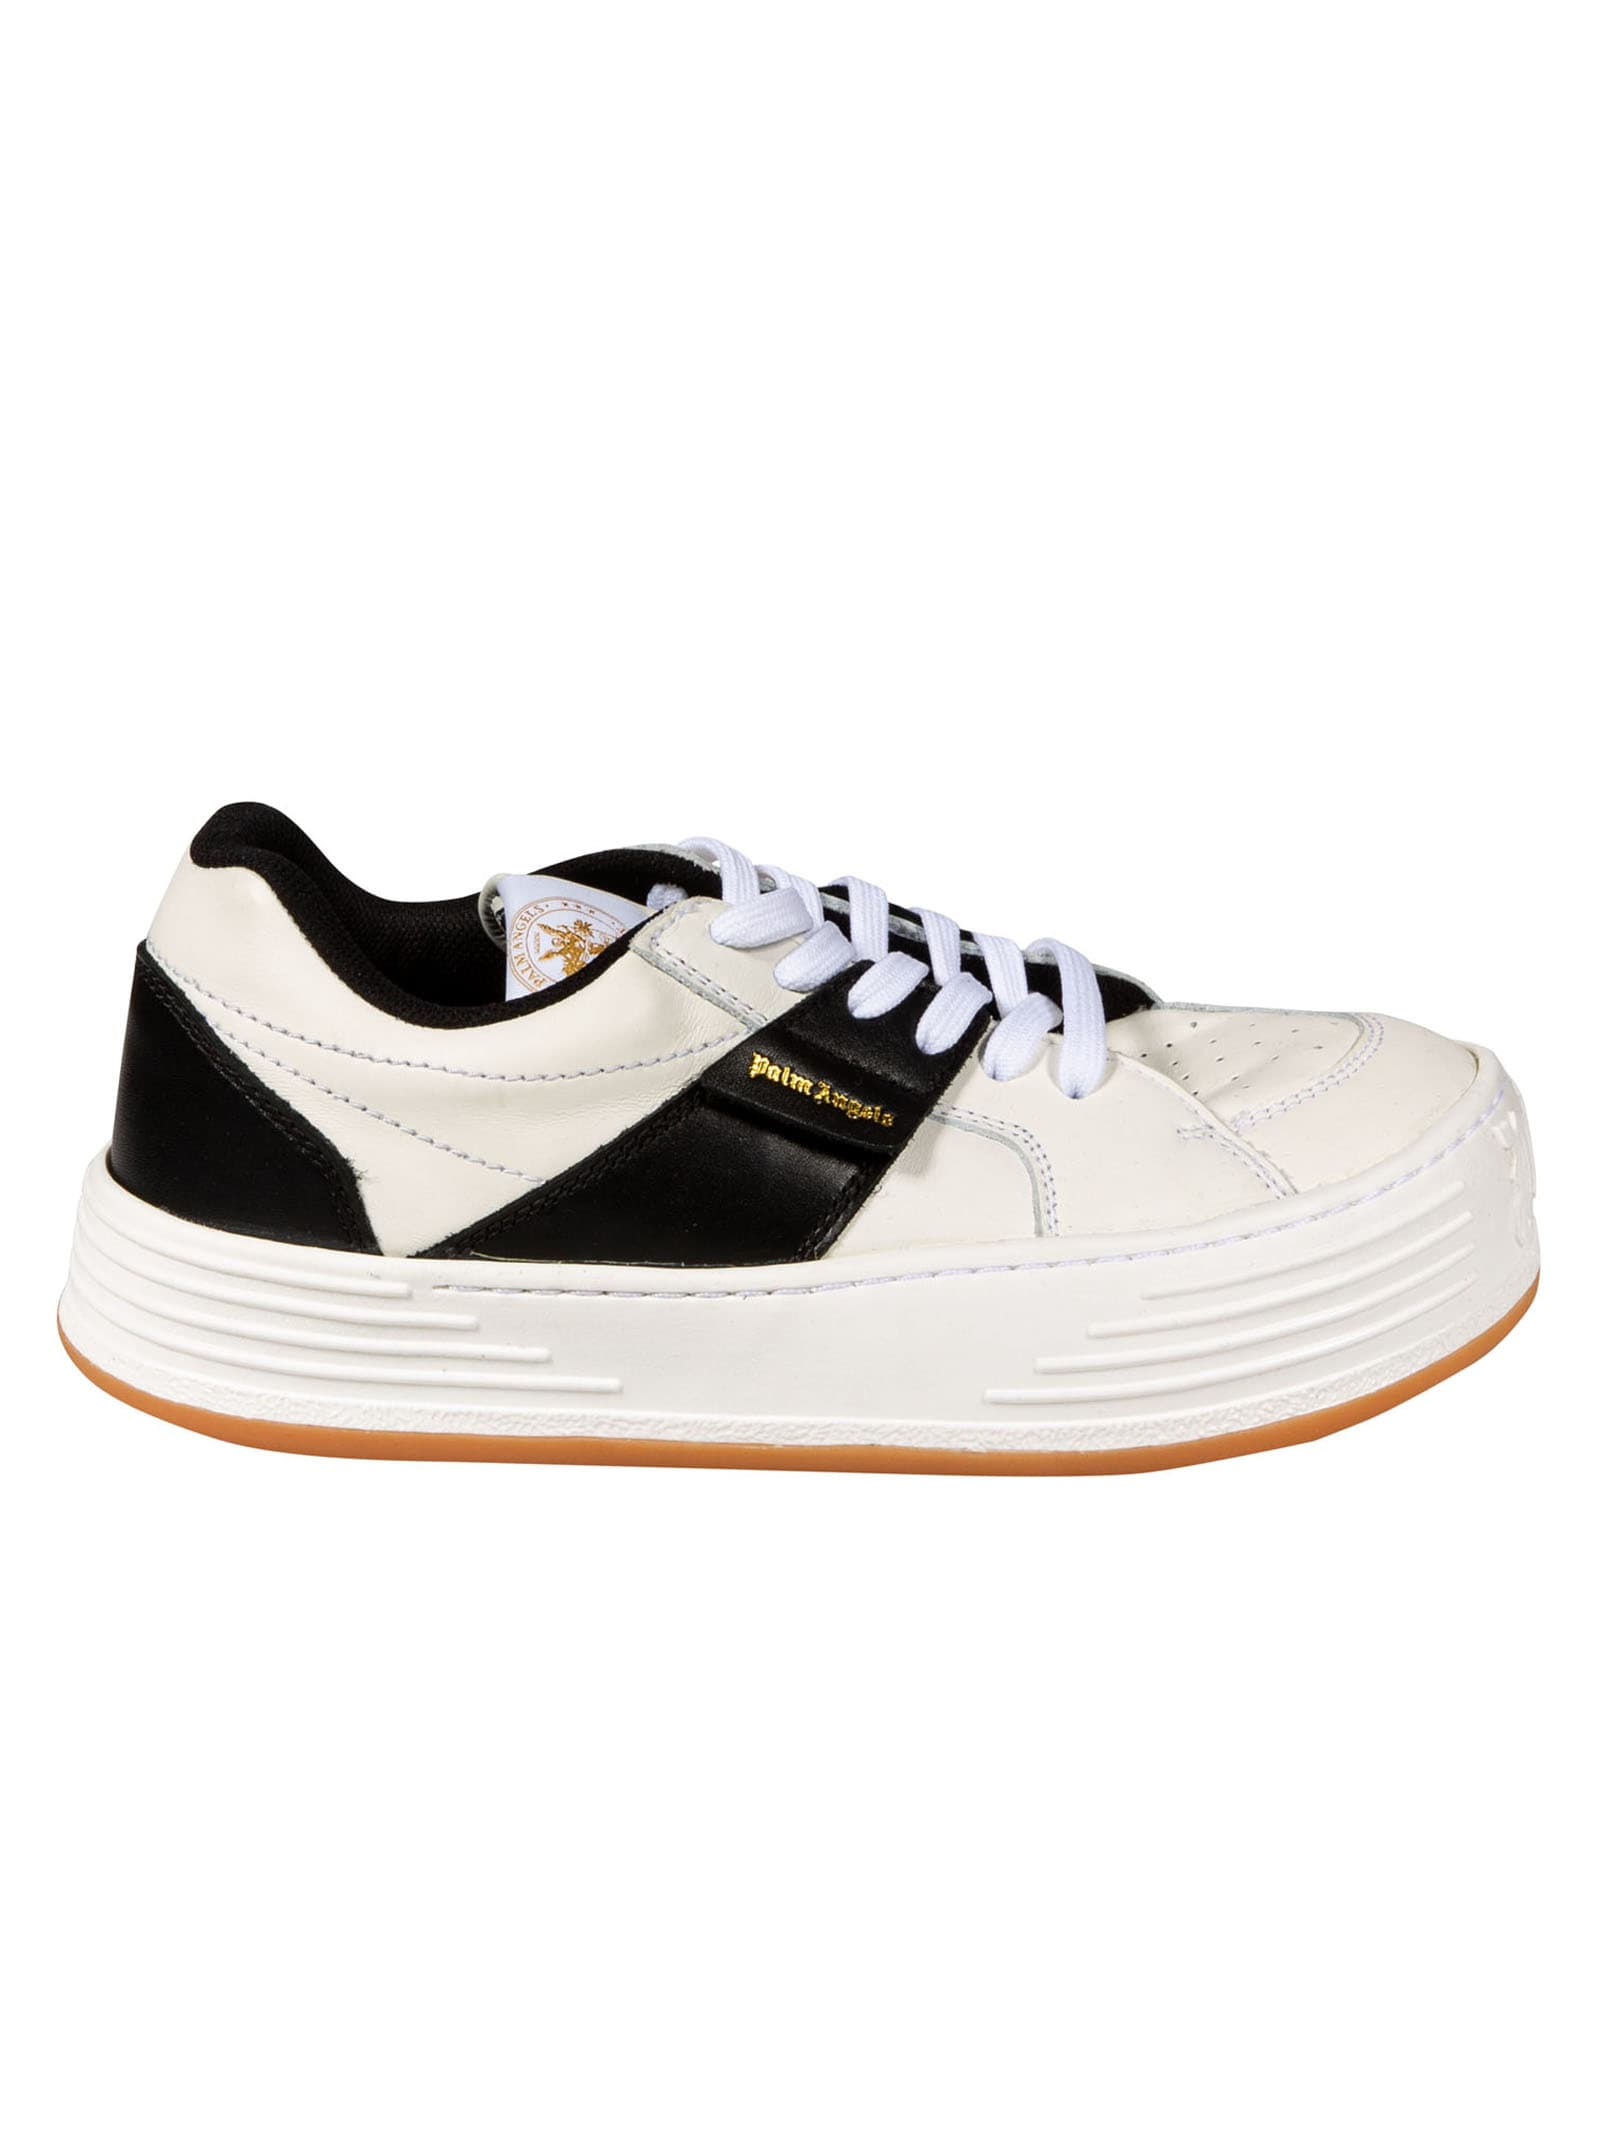 Palm Angels LEATHER SNOW LOW TOP SNEAKERS